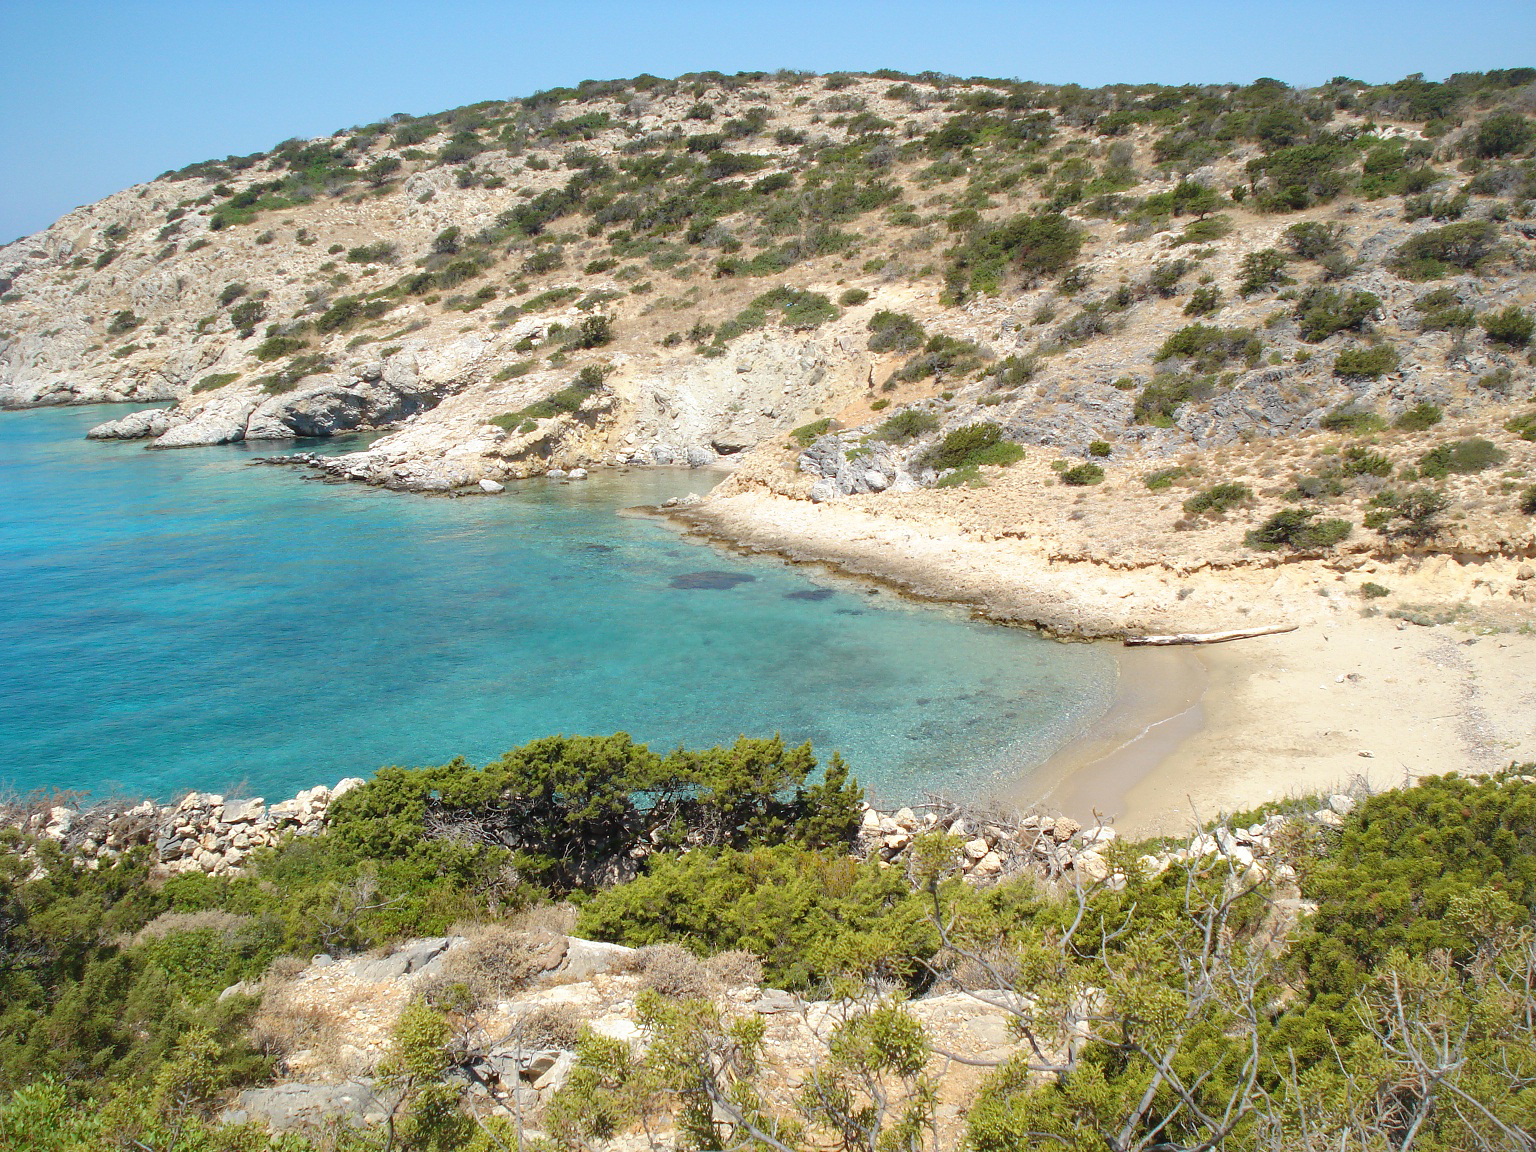 The Gerolimnionas Beach of Schinoussa